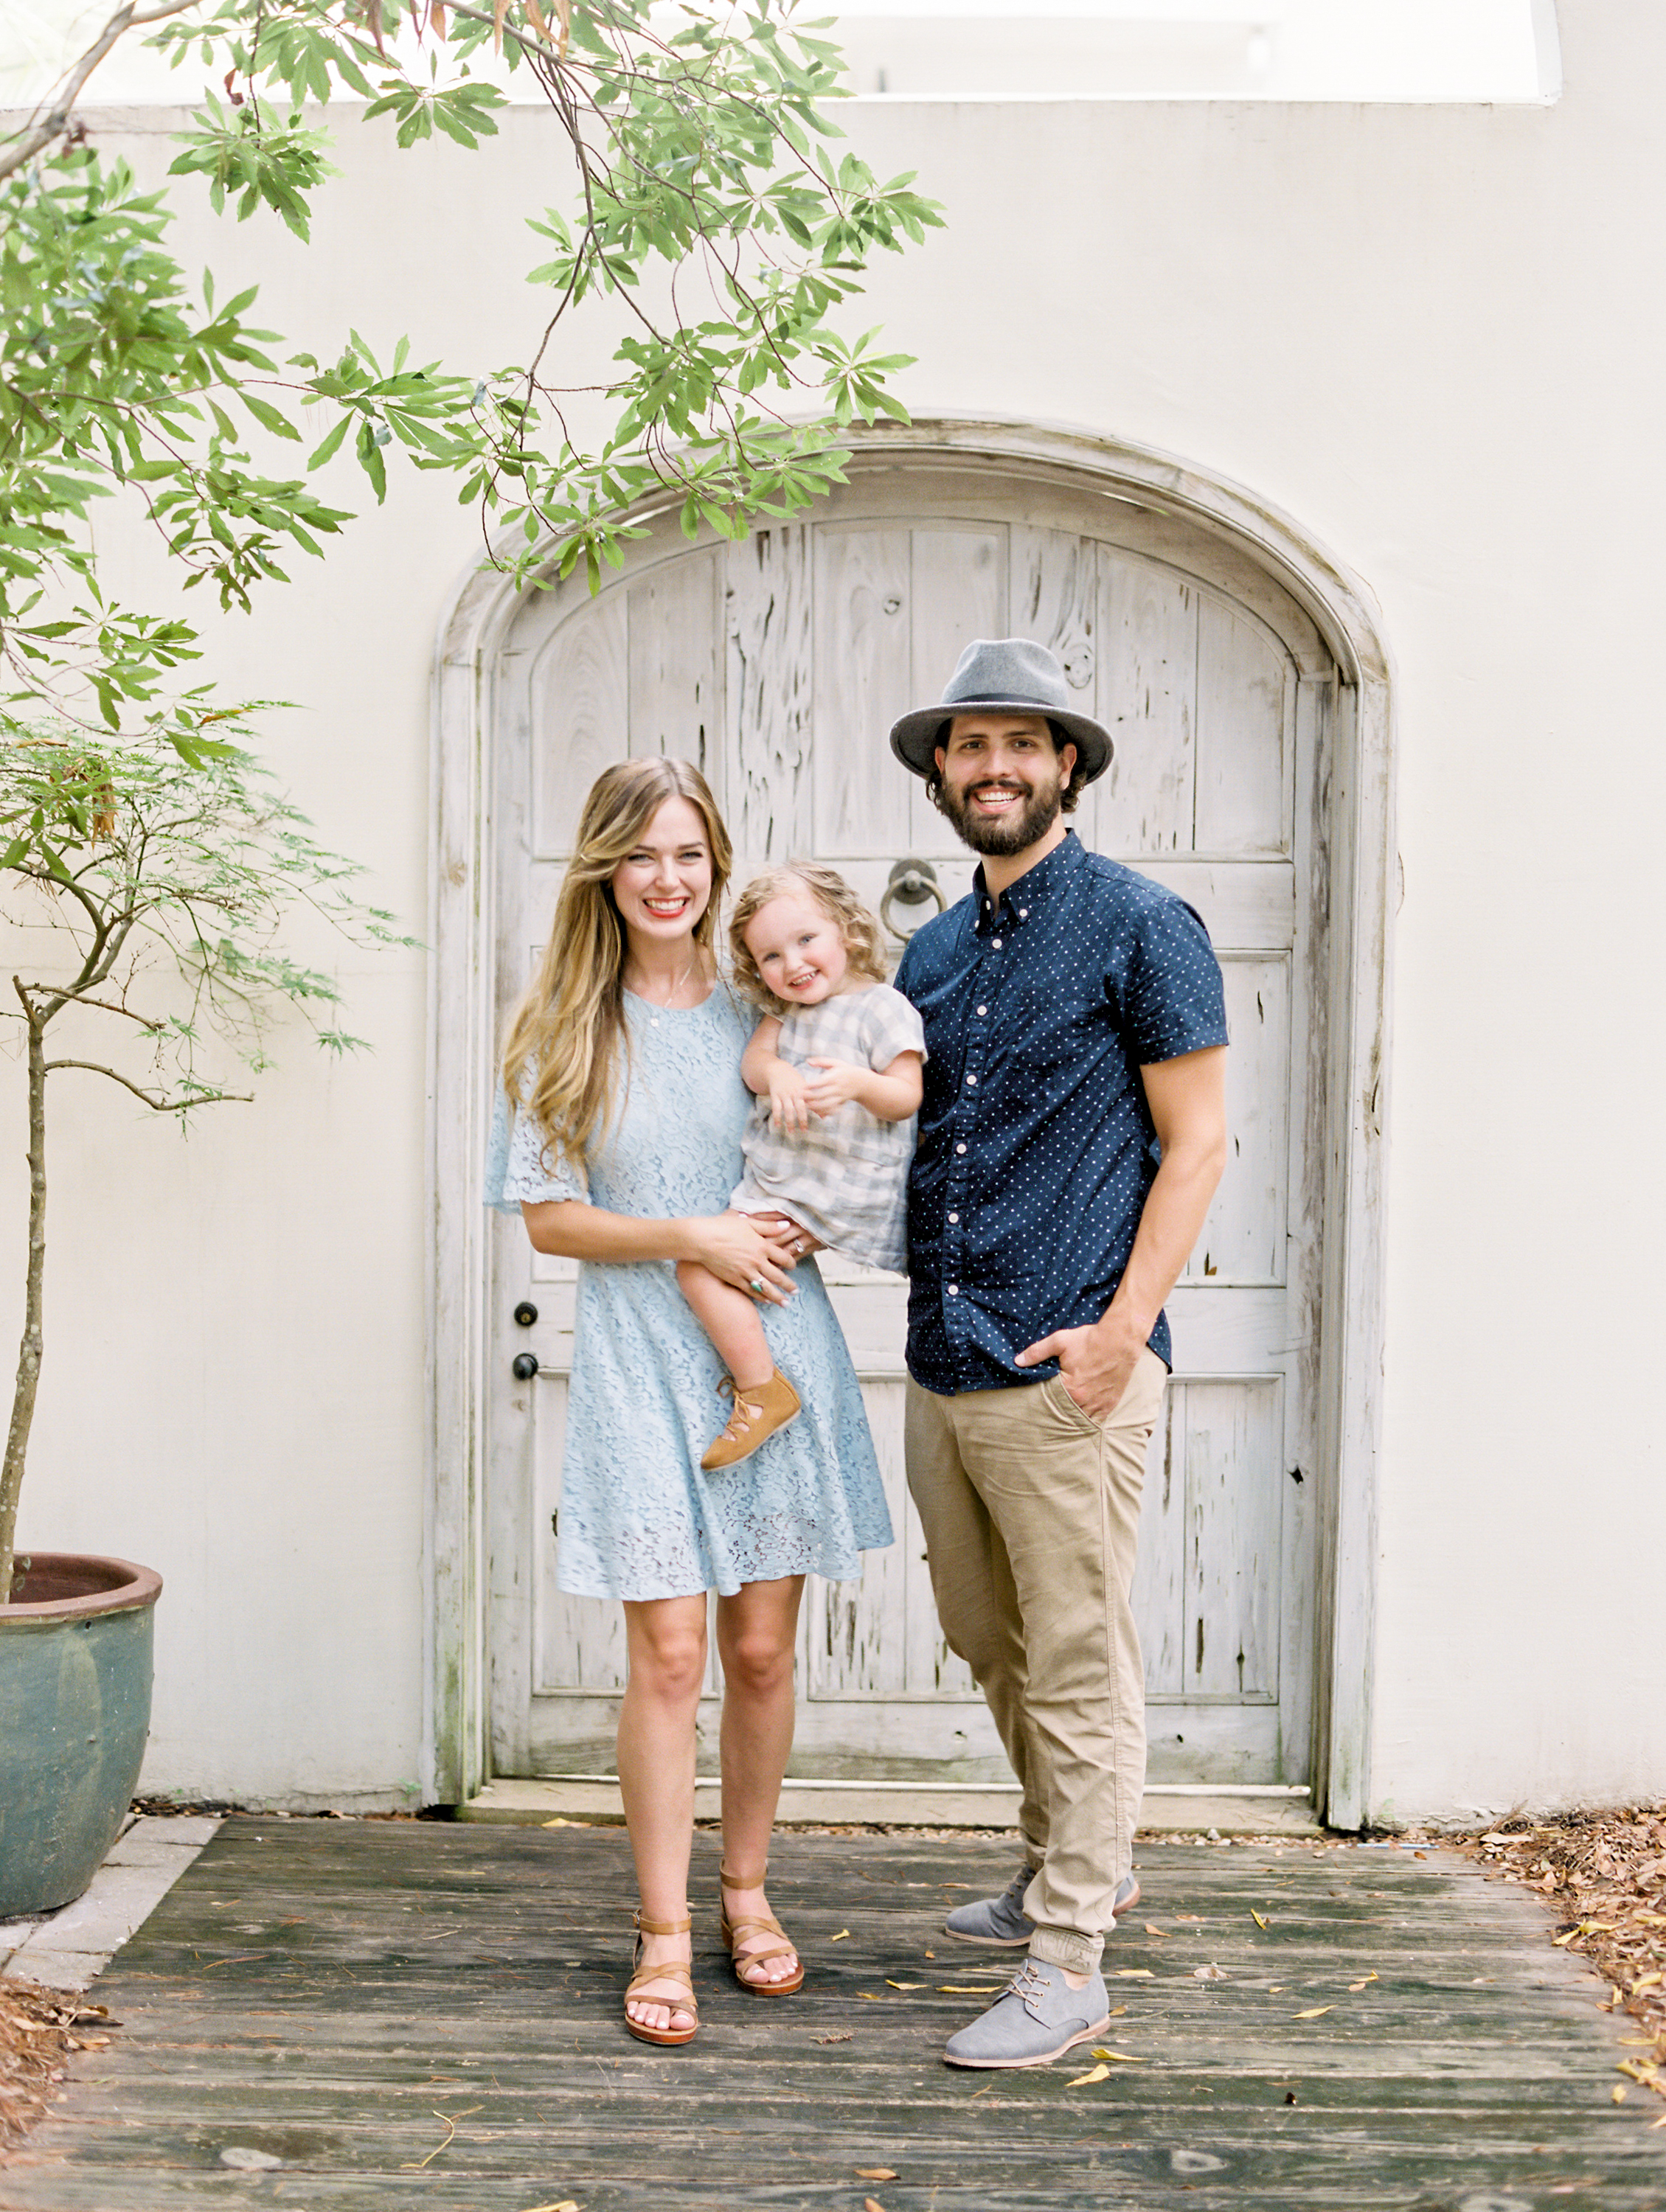 What to wear for family beach pictures? | Kaylie B. Poplin Photography | Rosemary Beach, Florida